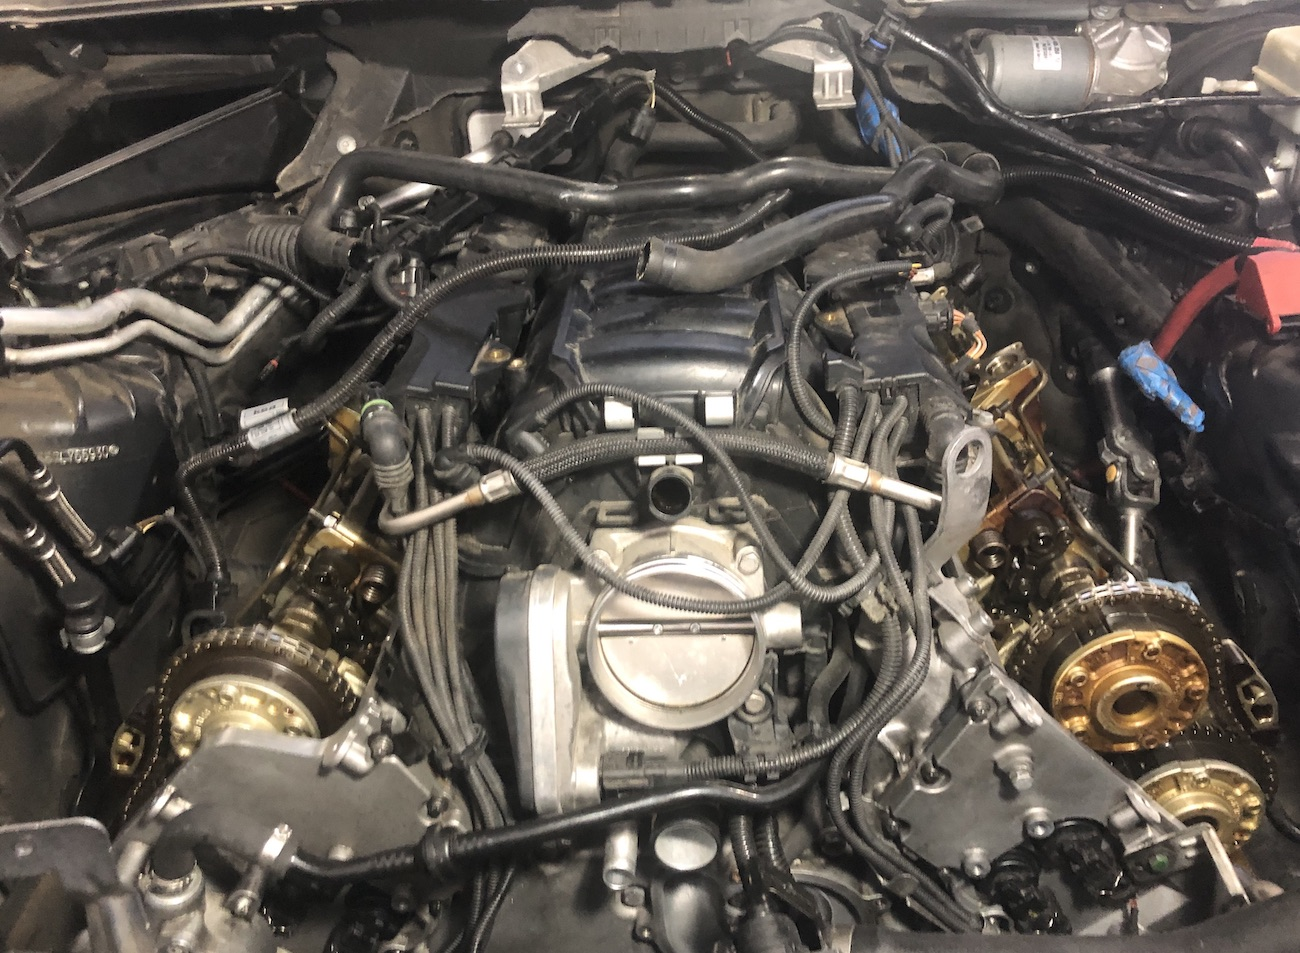 N62 Valve Cover and Timing Cover Gaskets - Extra Things to